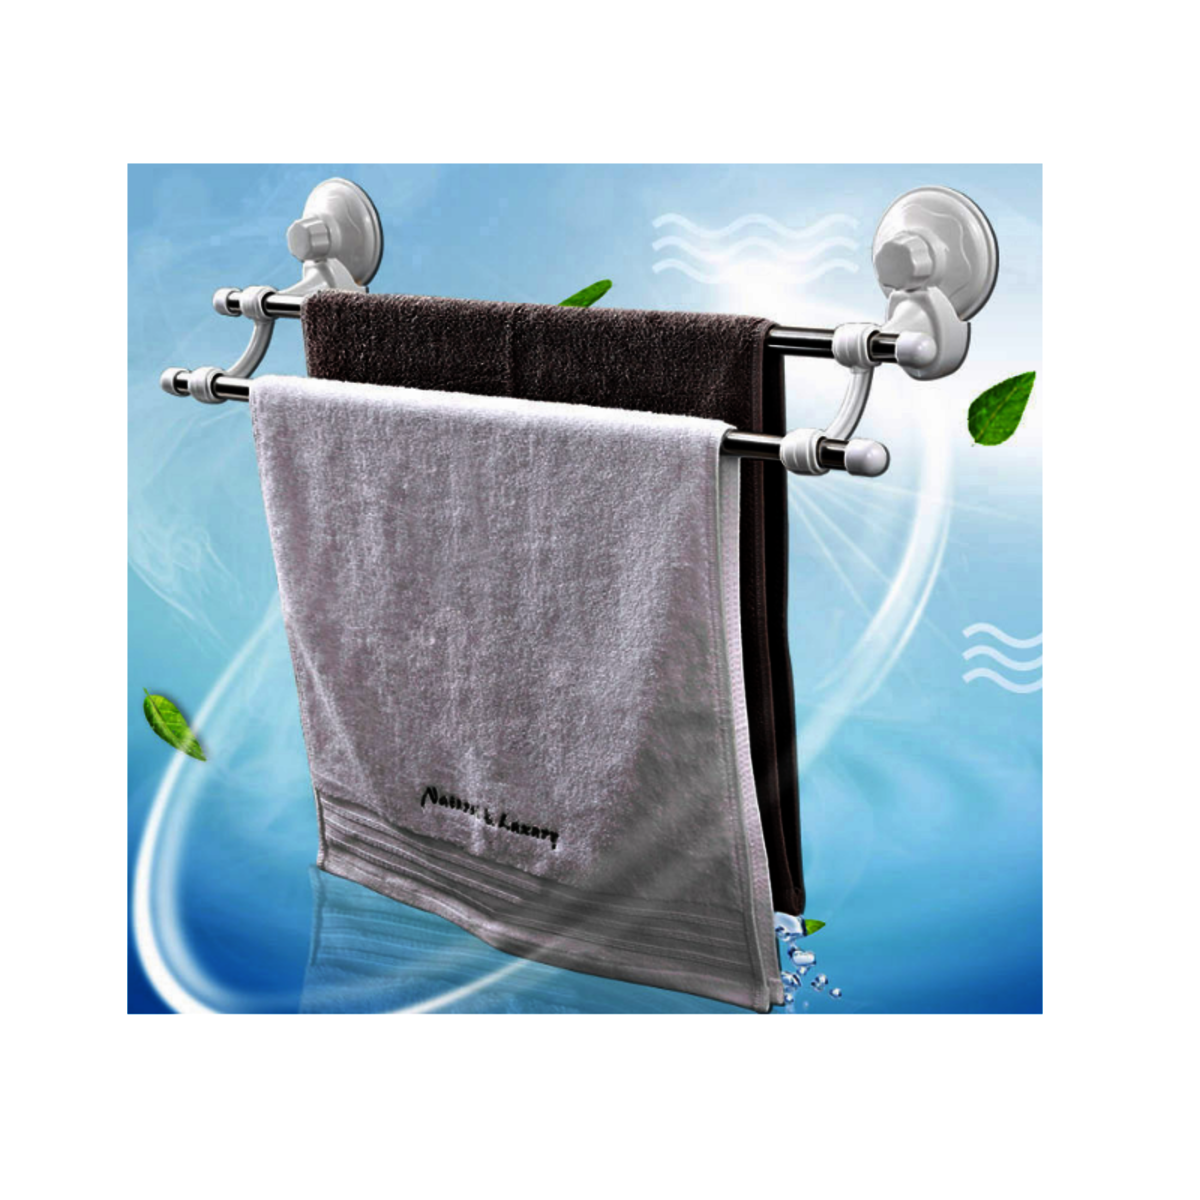 Double clothes hanger with suction cup